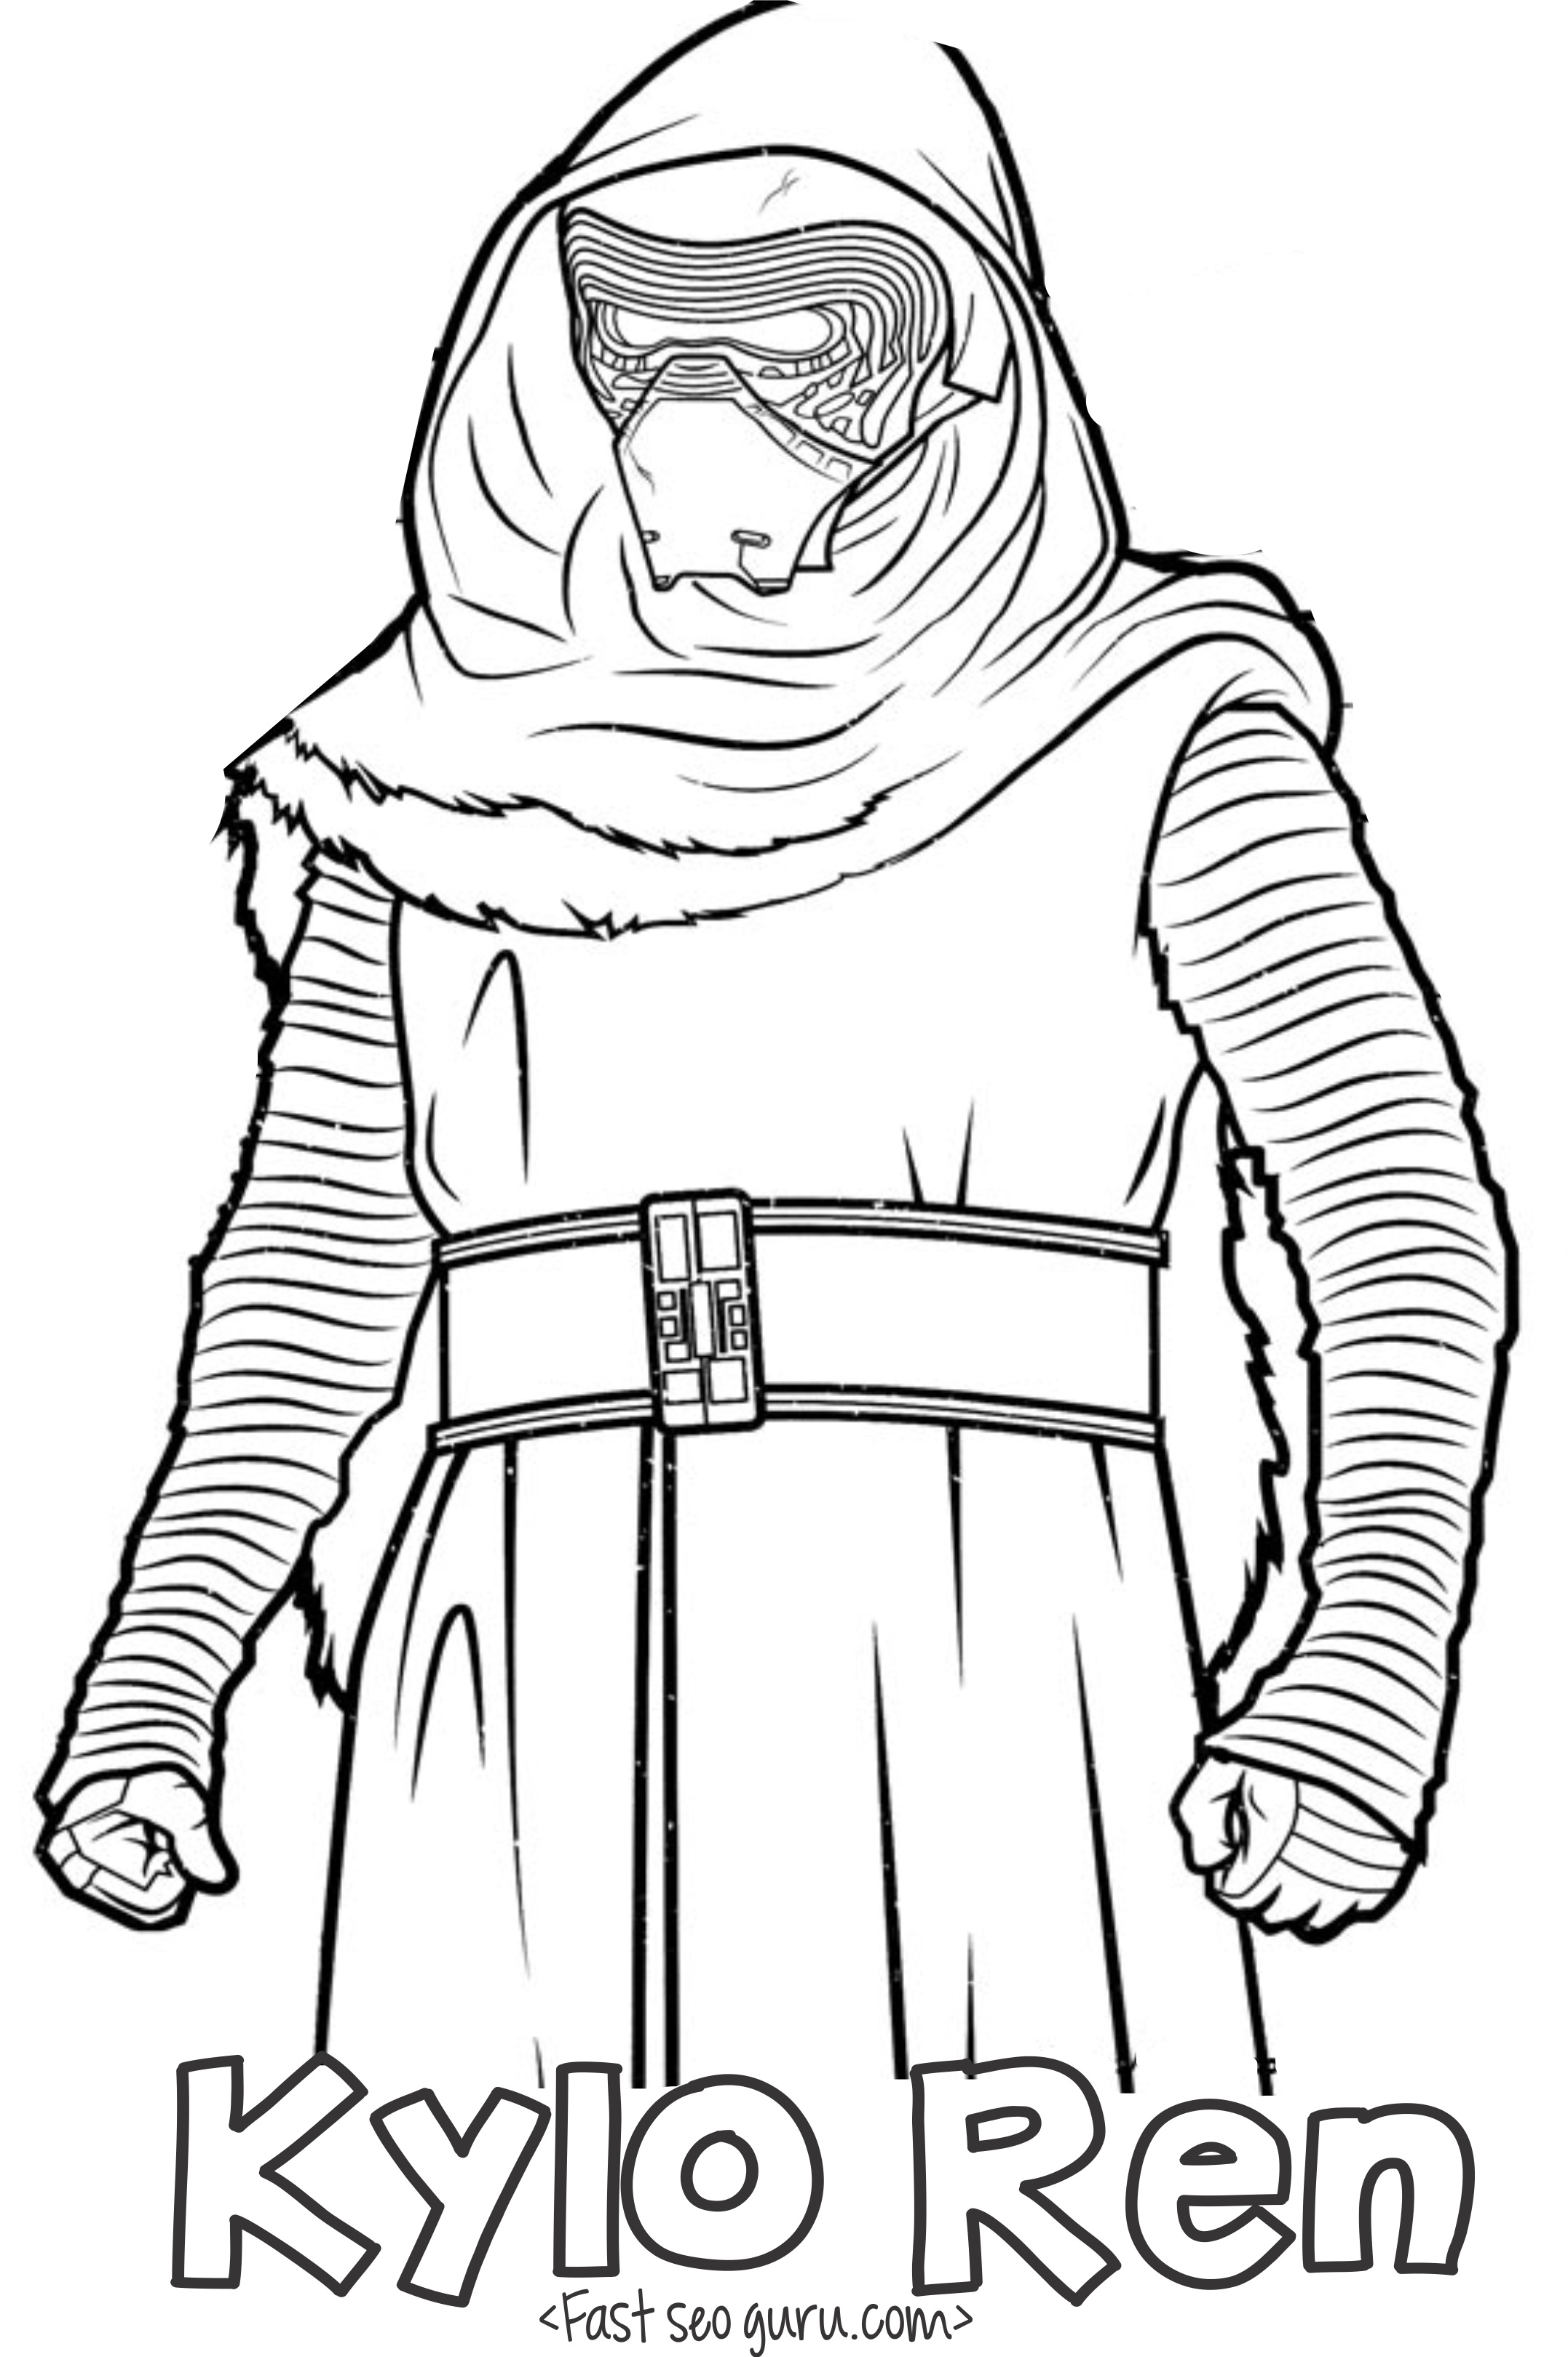 Star Wars The Force Awakens Kylo Ren Coloring Pages Download